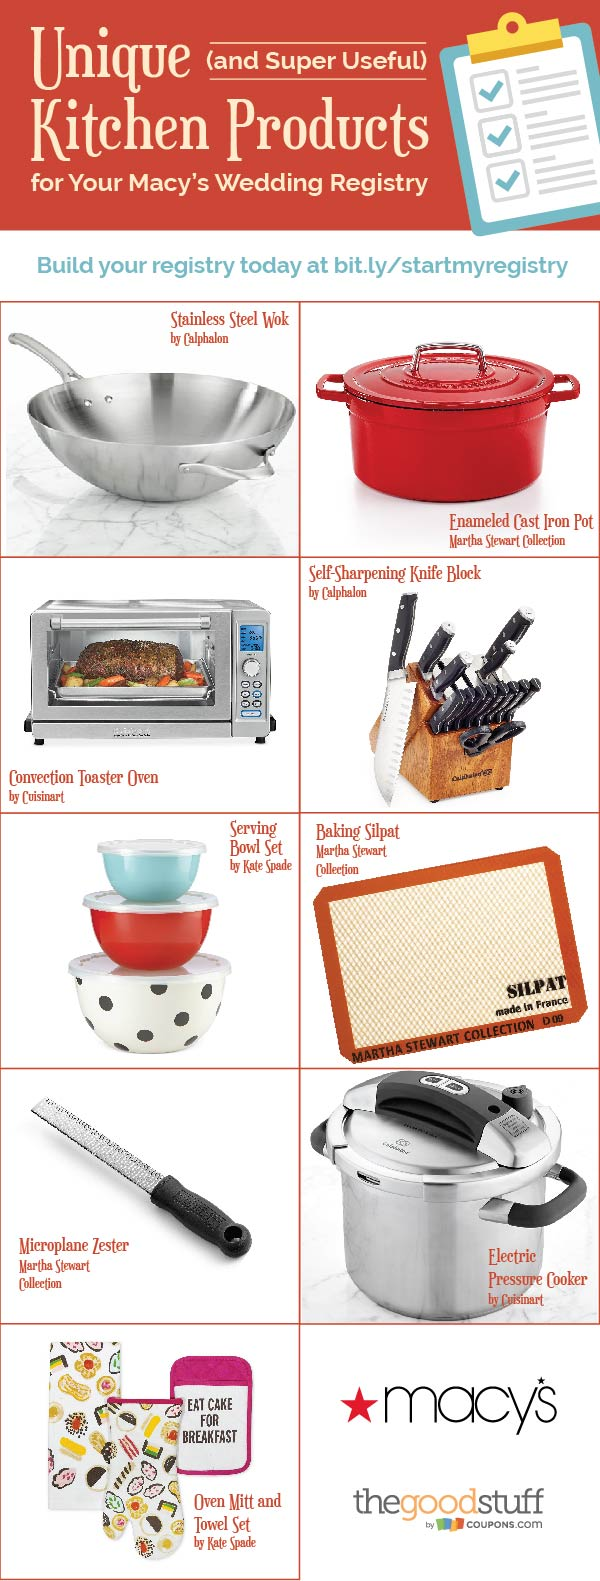 Add These Awesome Kitchen Gadgets to Your Macy's Wedding Registry | Coupons.com